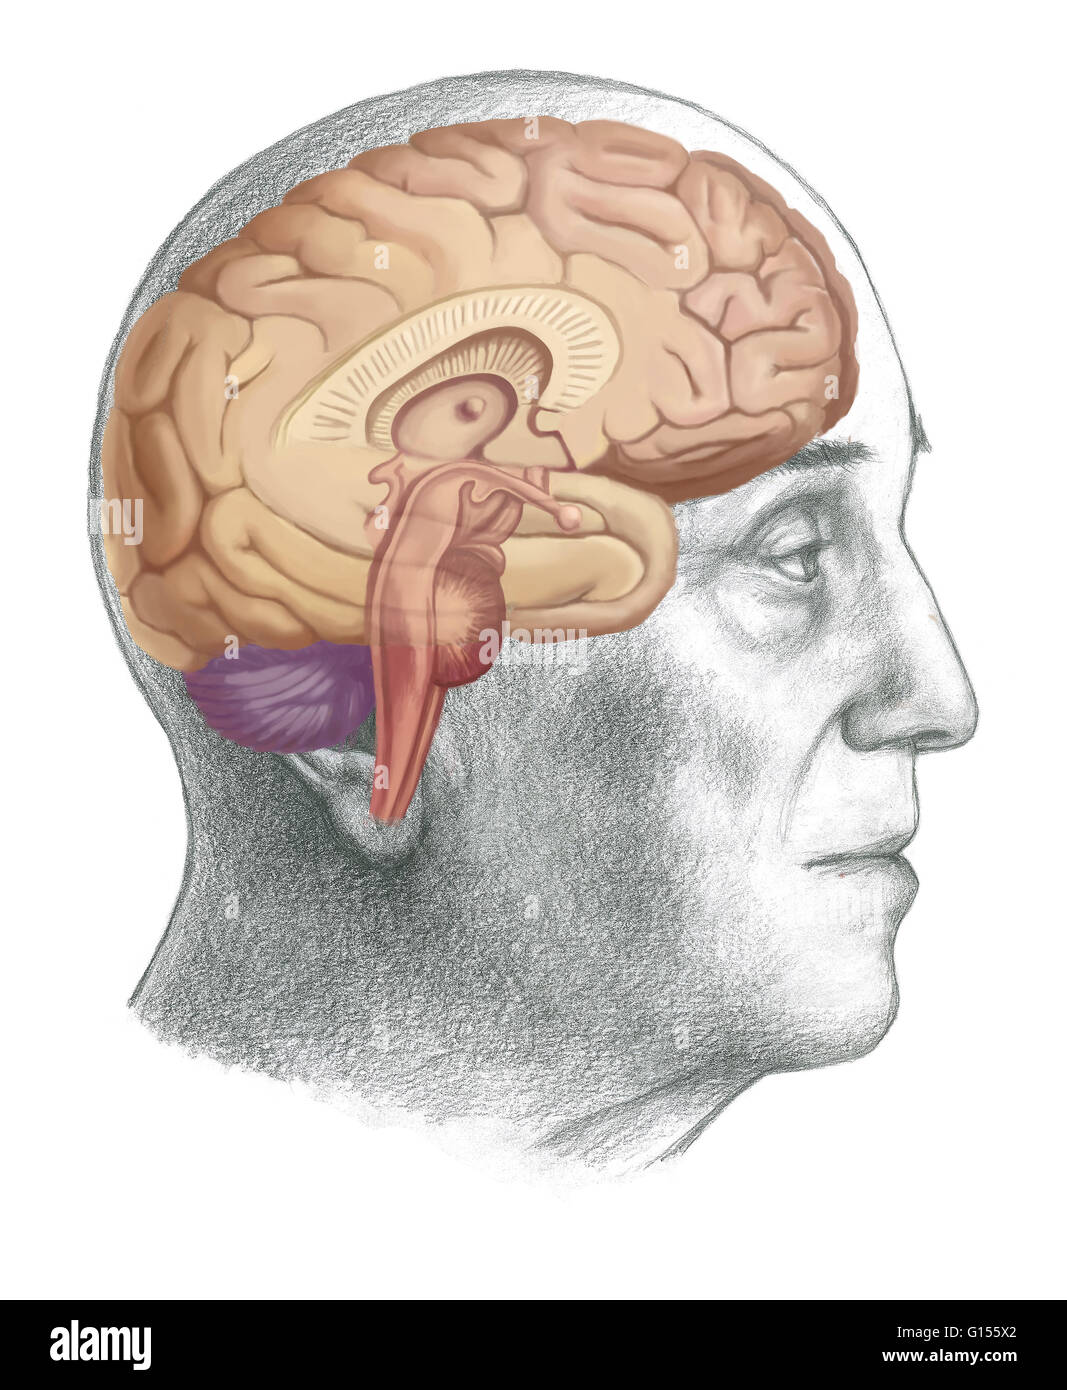 Illustration of a cross-section of the brain showing parts such as ...